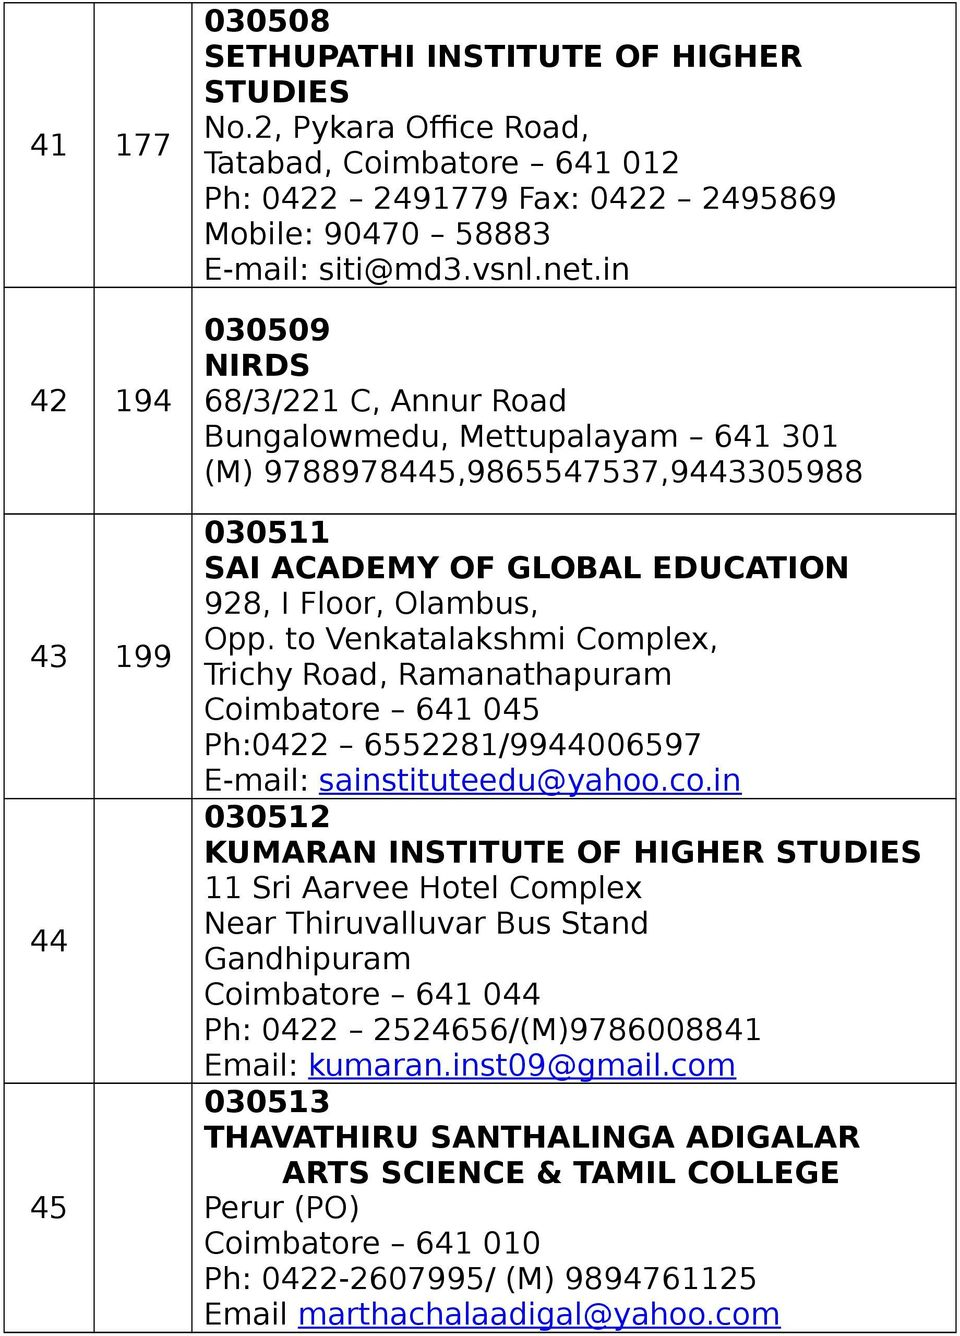 TAMIL NADU OPEN UNIVERSITY STUDENT SUPPORT SERVICES DIVISION UPDATED ...